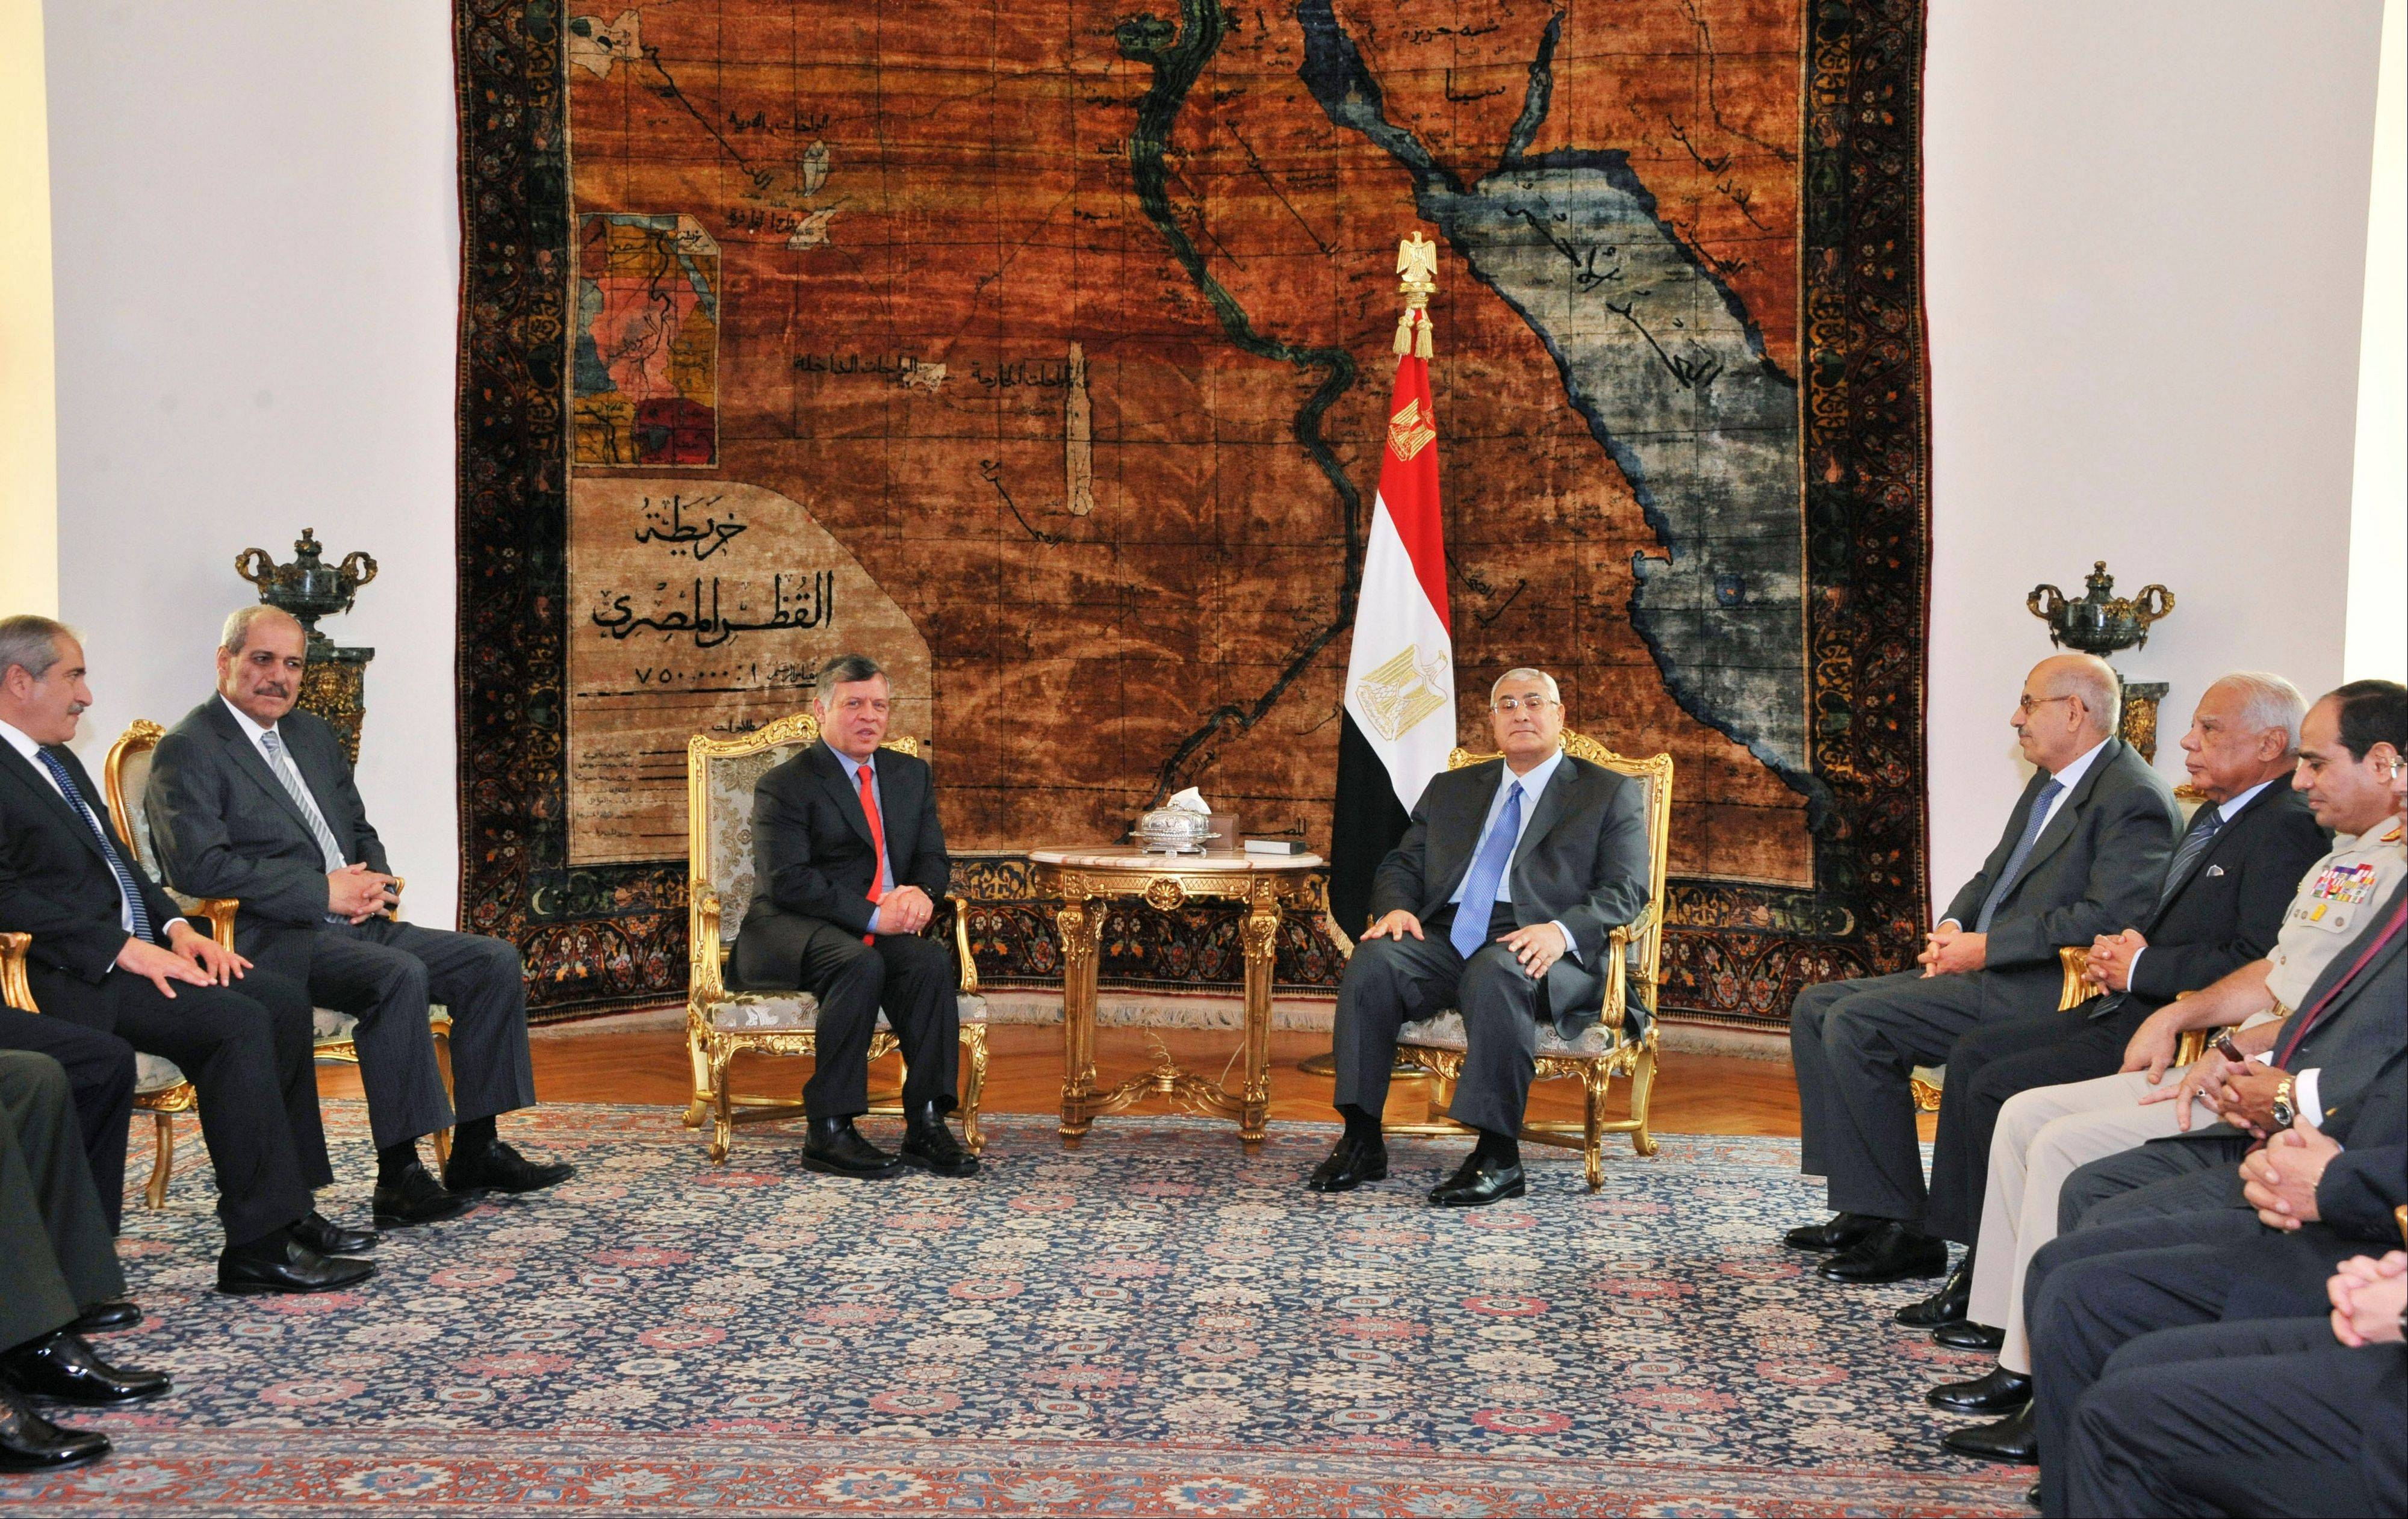 Associated PressIn this image released by the Egyptian presidency, Egypt's President Adly Mansour, center right, meets Jordan's King Abdullah II, center left, at the presidential palace in Cairo, Egypt, Saturday, July 20. Jordan's King Abdullah II arrived in Egypt's capital on Saturday for a short visit -- the first visit by a head of state to Egypt since the ouster of President Mohamed Morsi on July 3. Jordan's Foreign Minister Nasser Judeh, from left, Chief of the Jordanian Royal Court Fayez Tarawneh, Vice President Mohammed ElBaradei, Prime Minister Hazem el-Beblawi and Defense Minister Gen. Abdel-Fattah el-Sissi also joined the meeting.